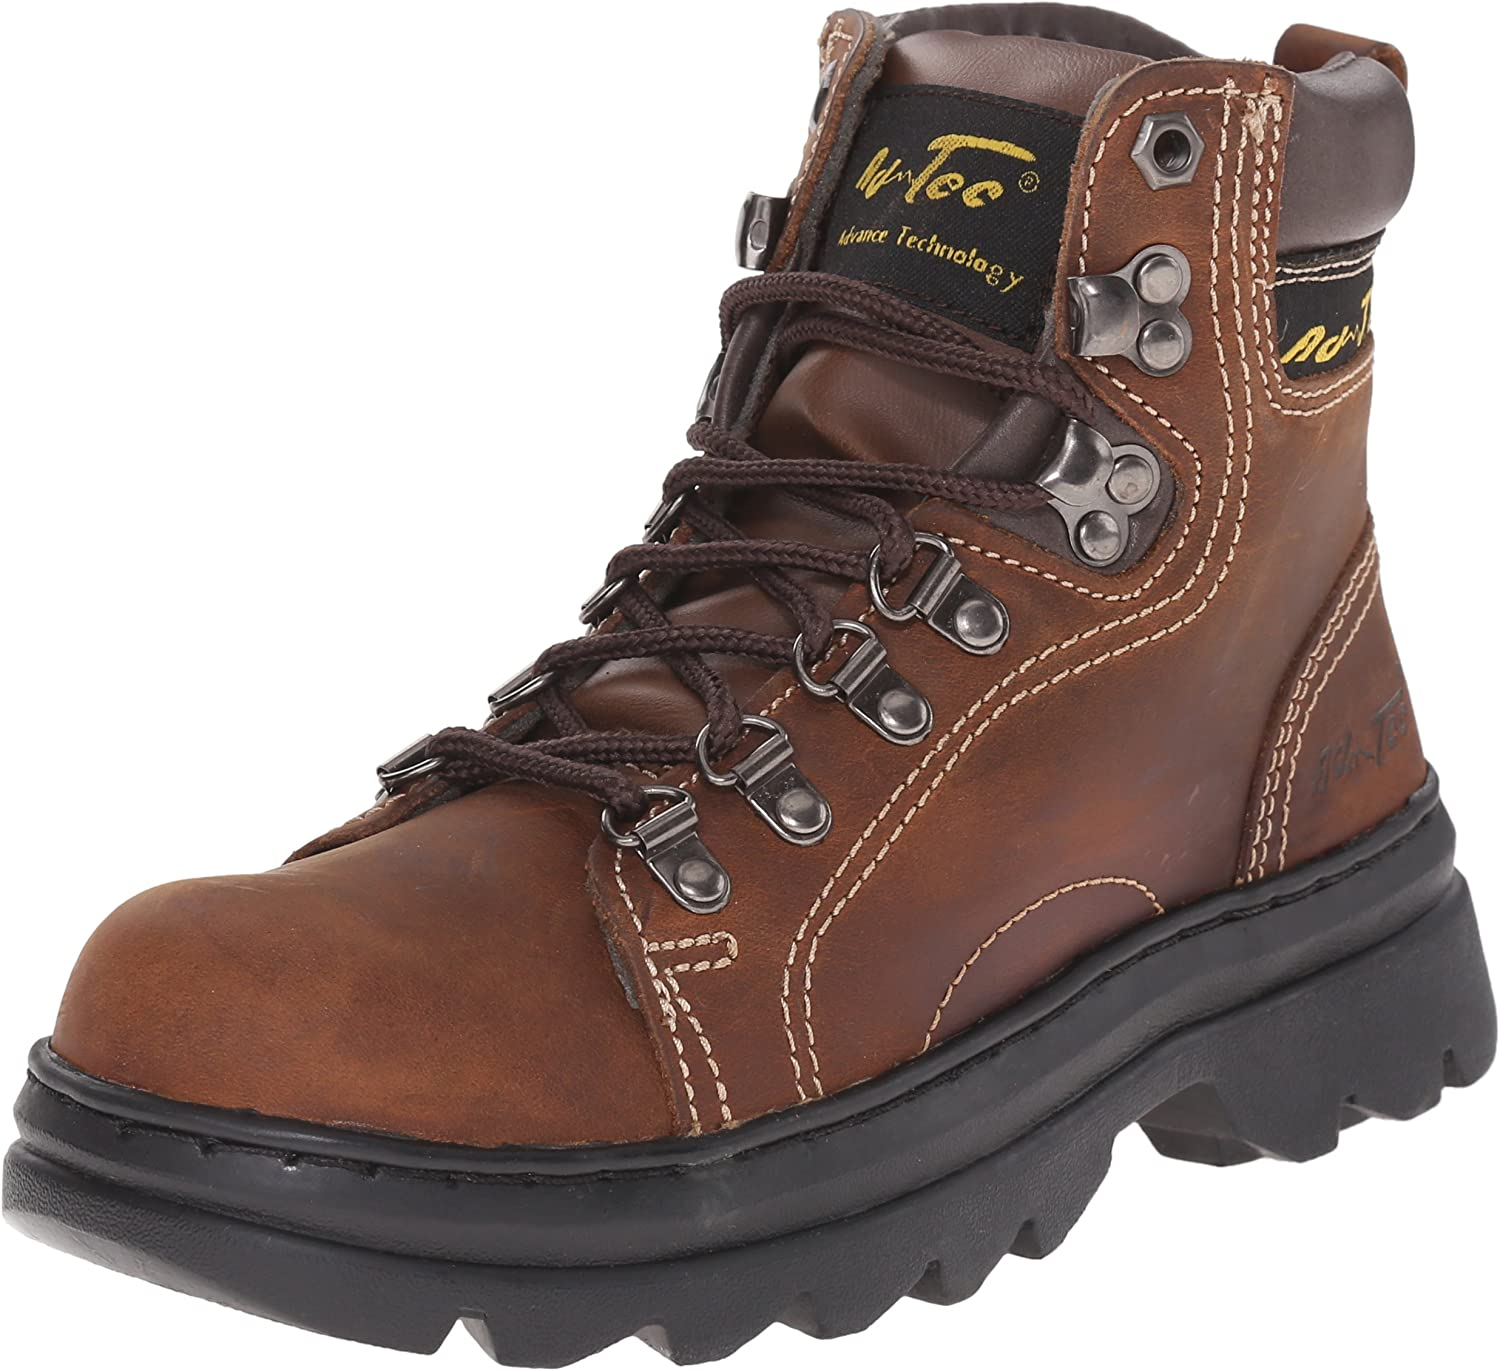 AdTec Womens 6 in Hiking Crazy Horse Leather Padded Collar Work Boot, Brown